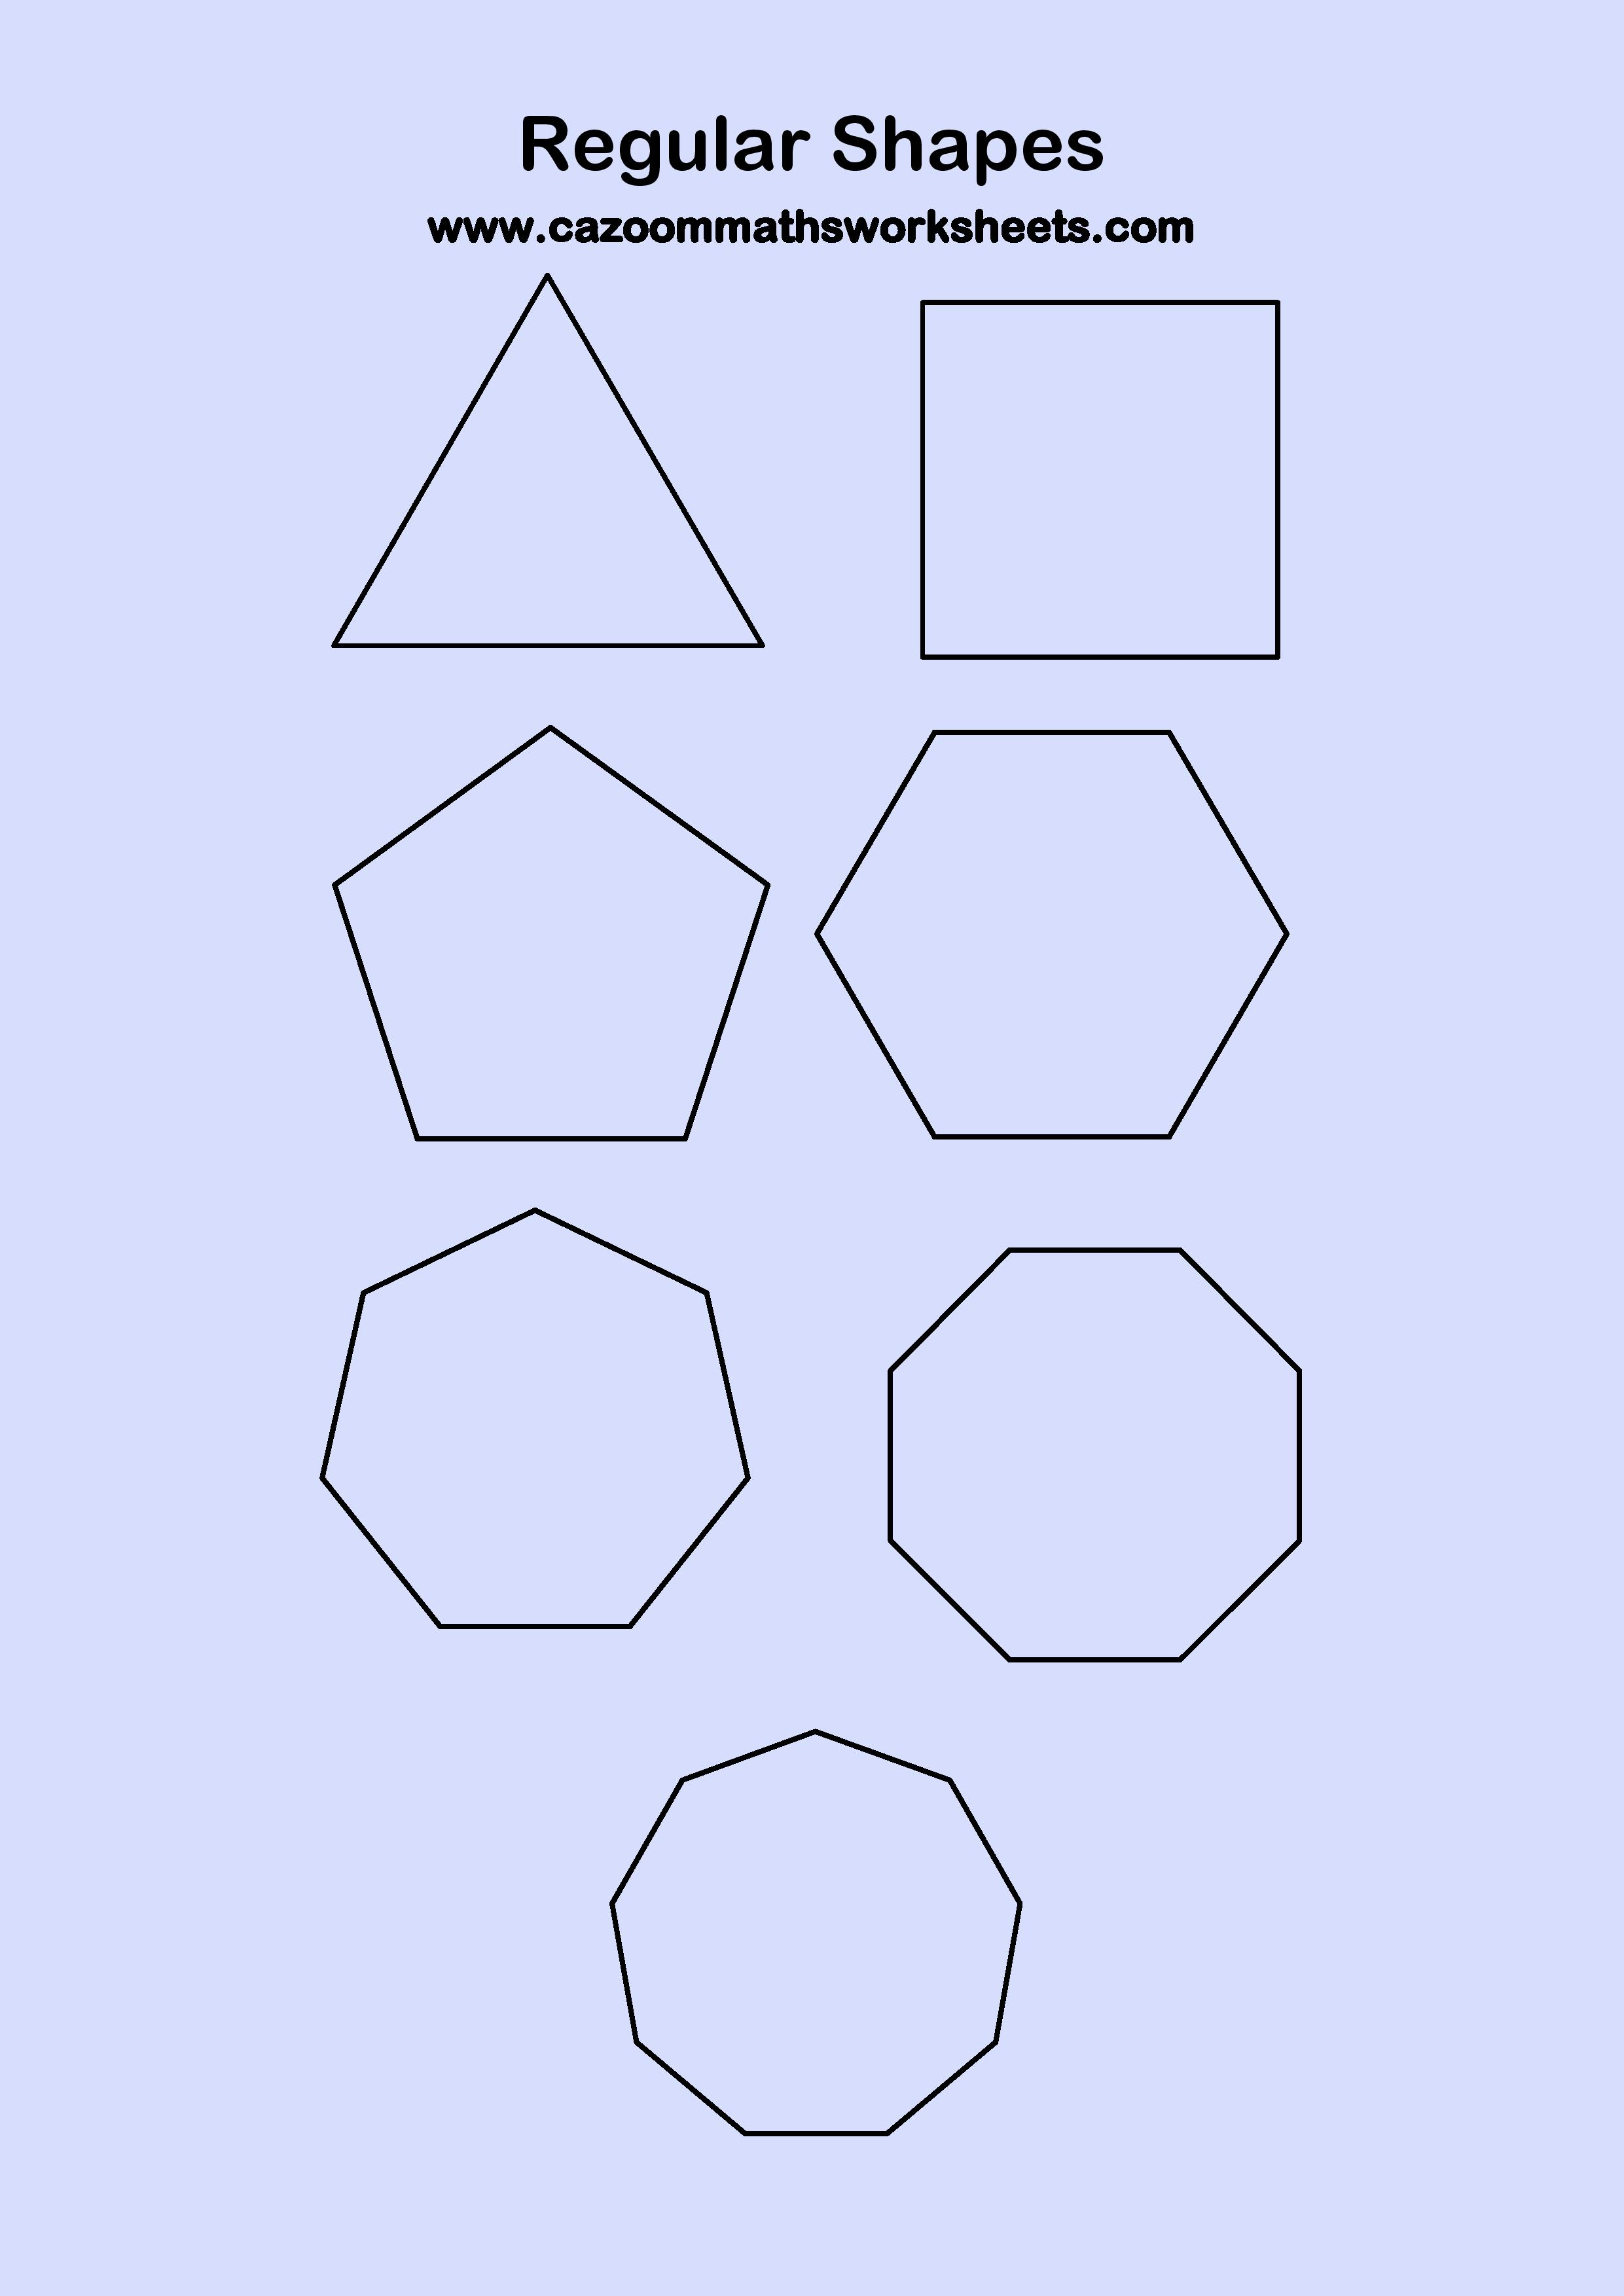 Regular Hexagon Shape Regular Polygon Shapes...